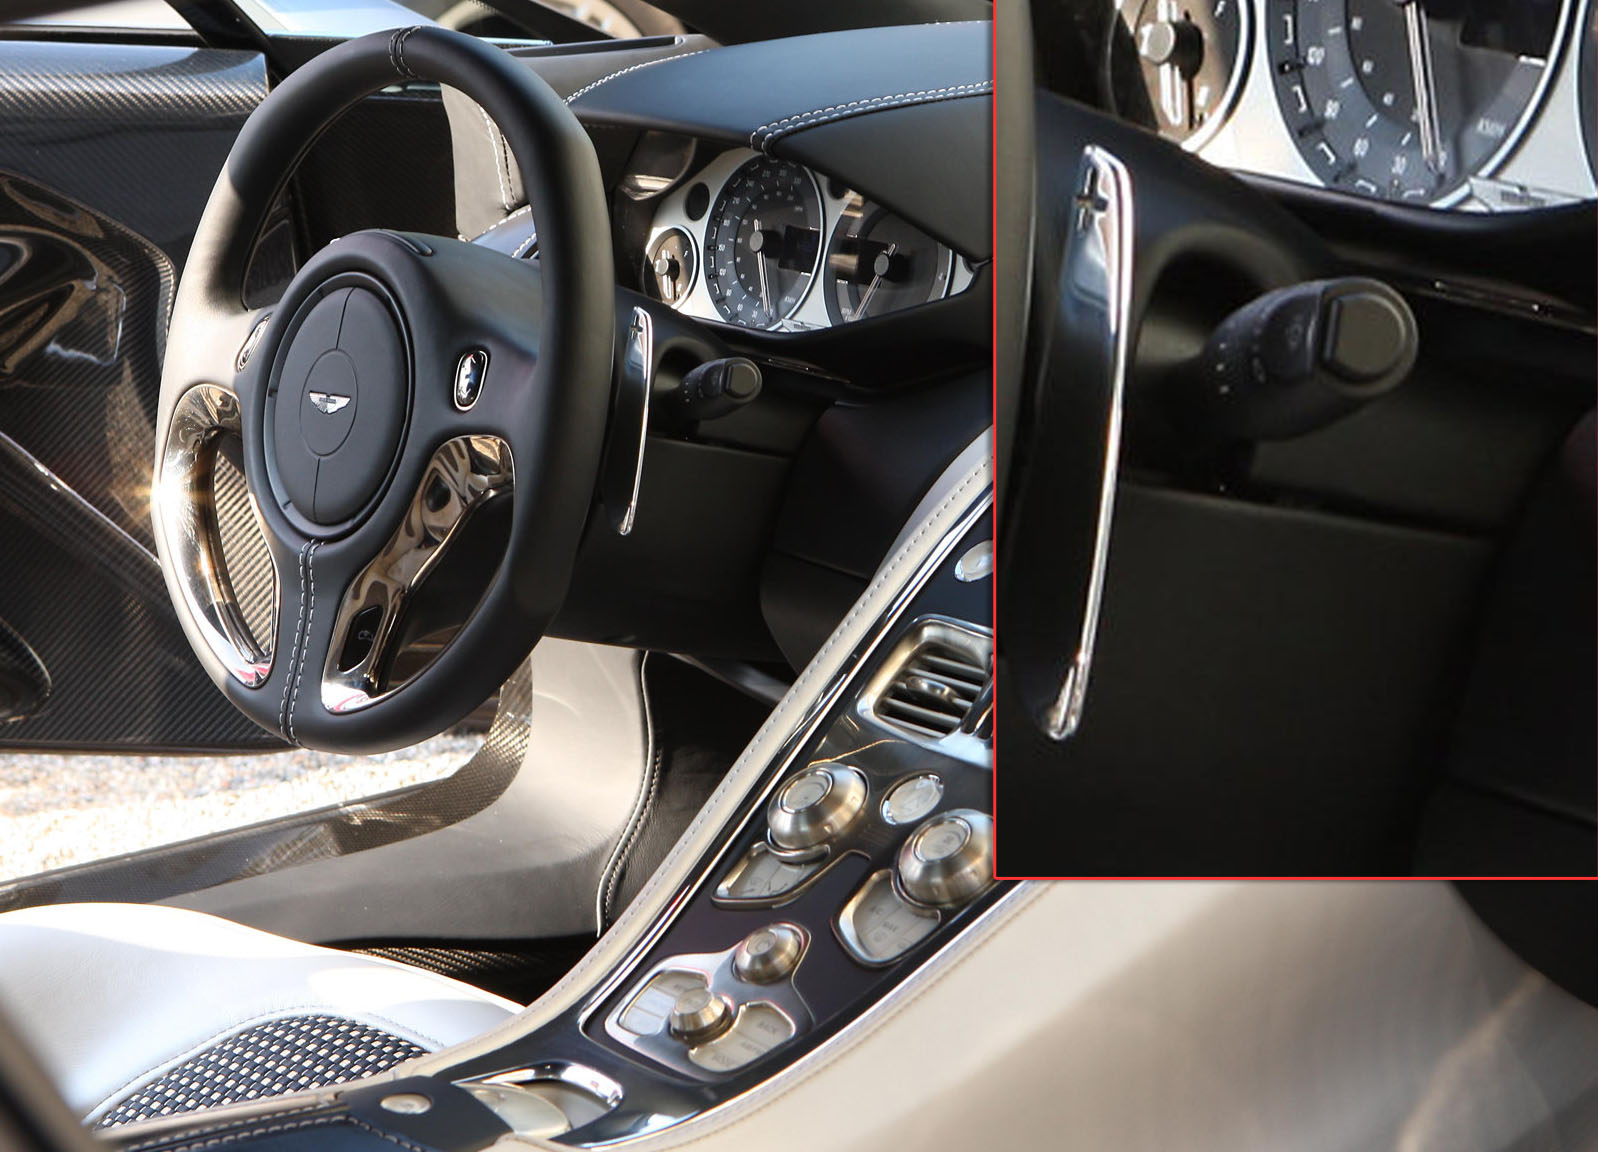 The First Pictures Of The Interior Of The One Point Seven Five Million  Dollar (US) Aston Martin One 77 Were Published Today After The Caru0027s  Official Reveal ...